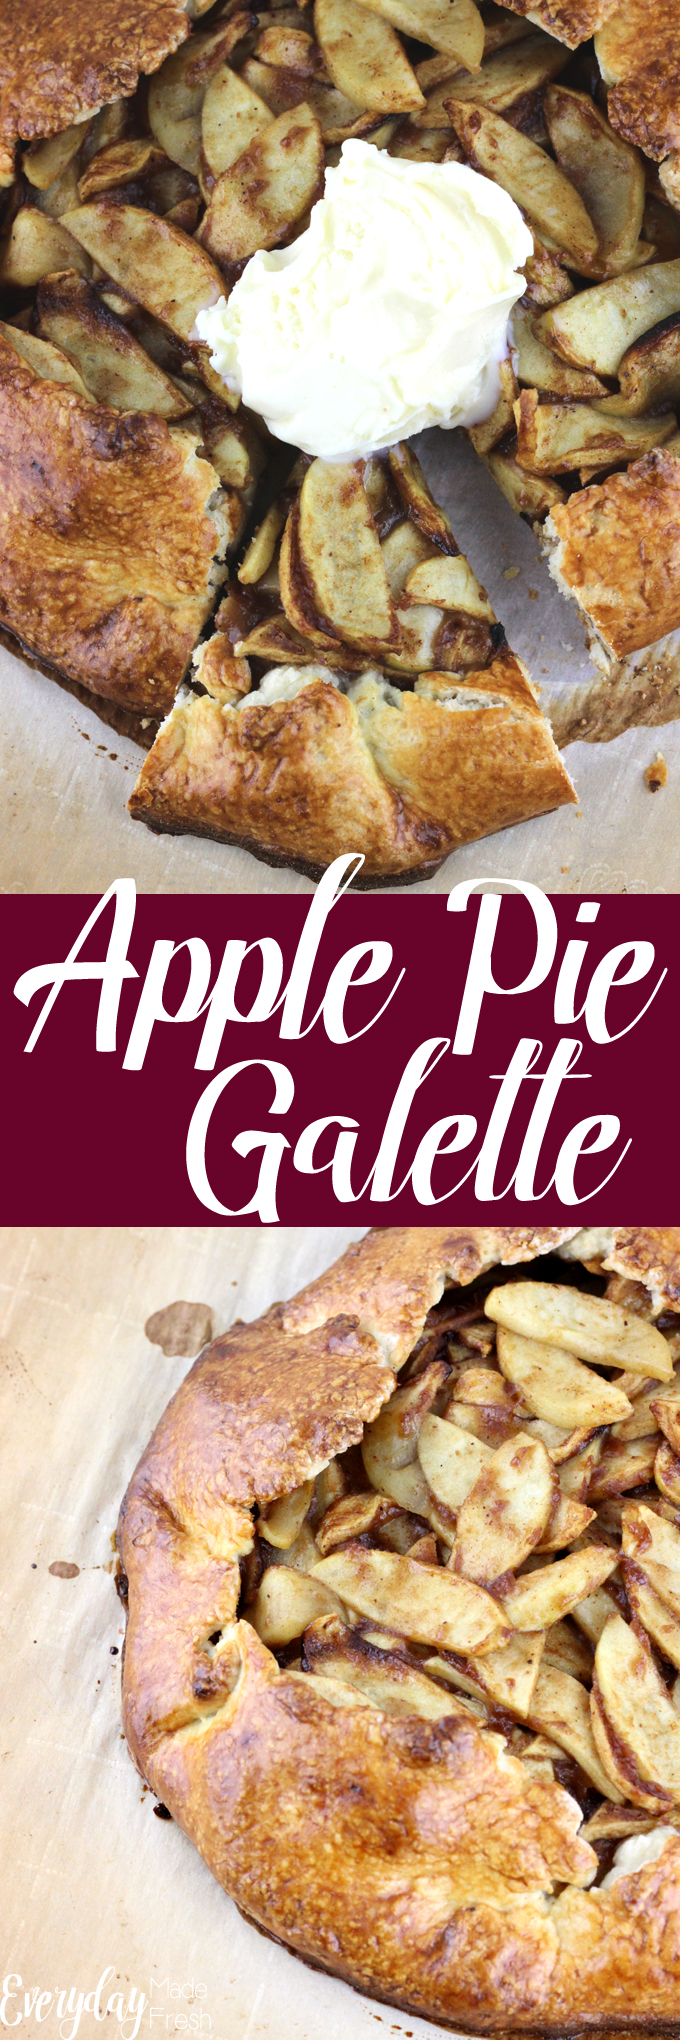 The easiest shortcut to pie for those of us that don't want to fuss with all the trouble. This Apple Pie Galette tastes just like apple pie but far easier! It's the perfect addition to your holiday table. | EverydayMadeFresh.com